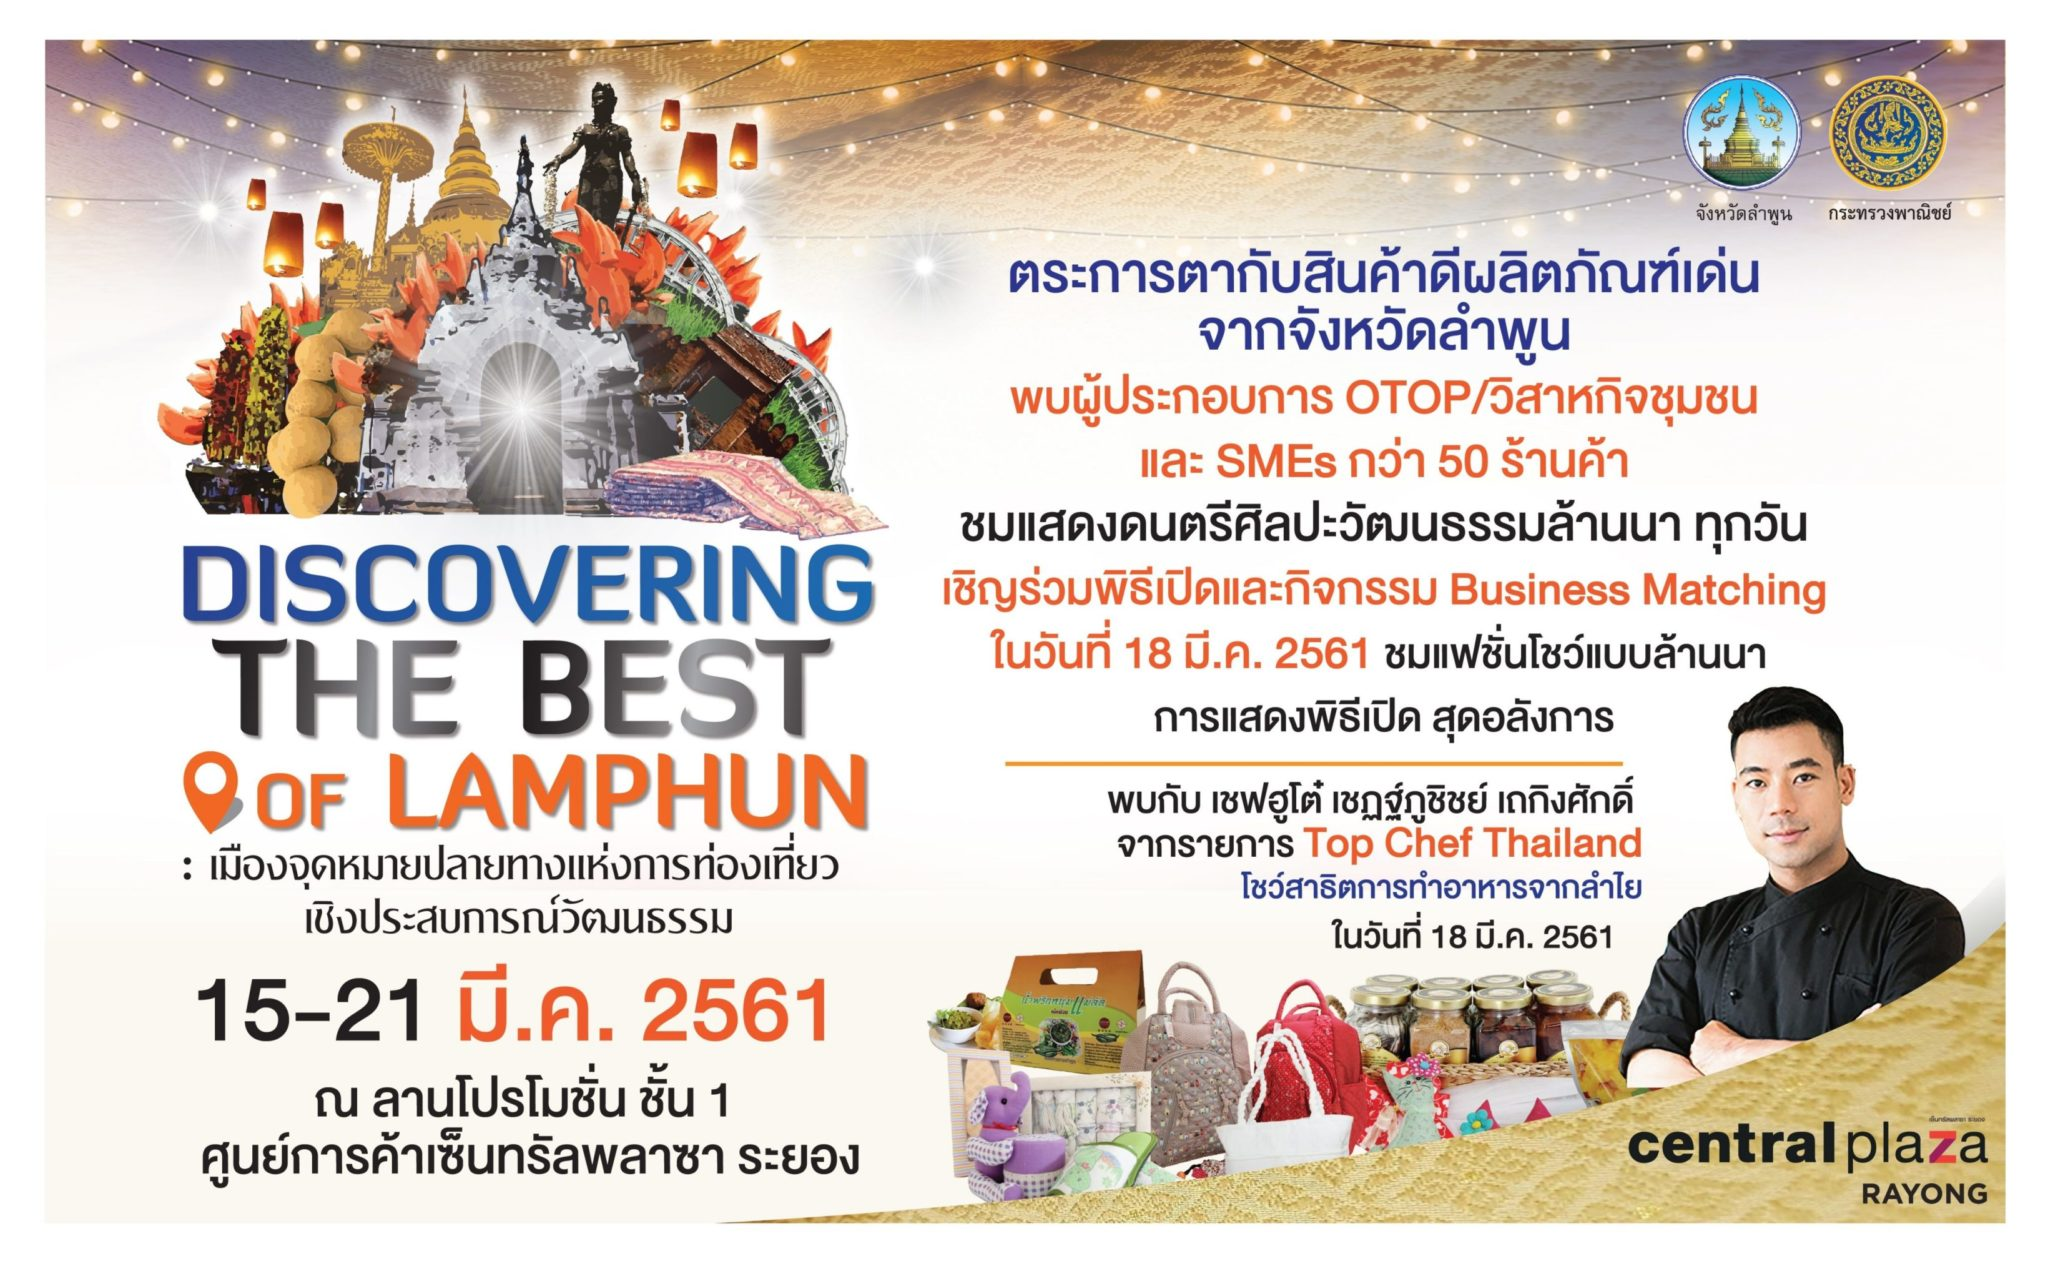 DISCOVERING THE BEST OF LAMPHUN ครั้งที่ 3